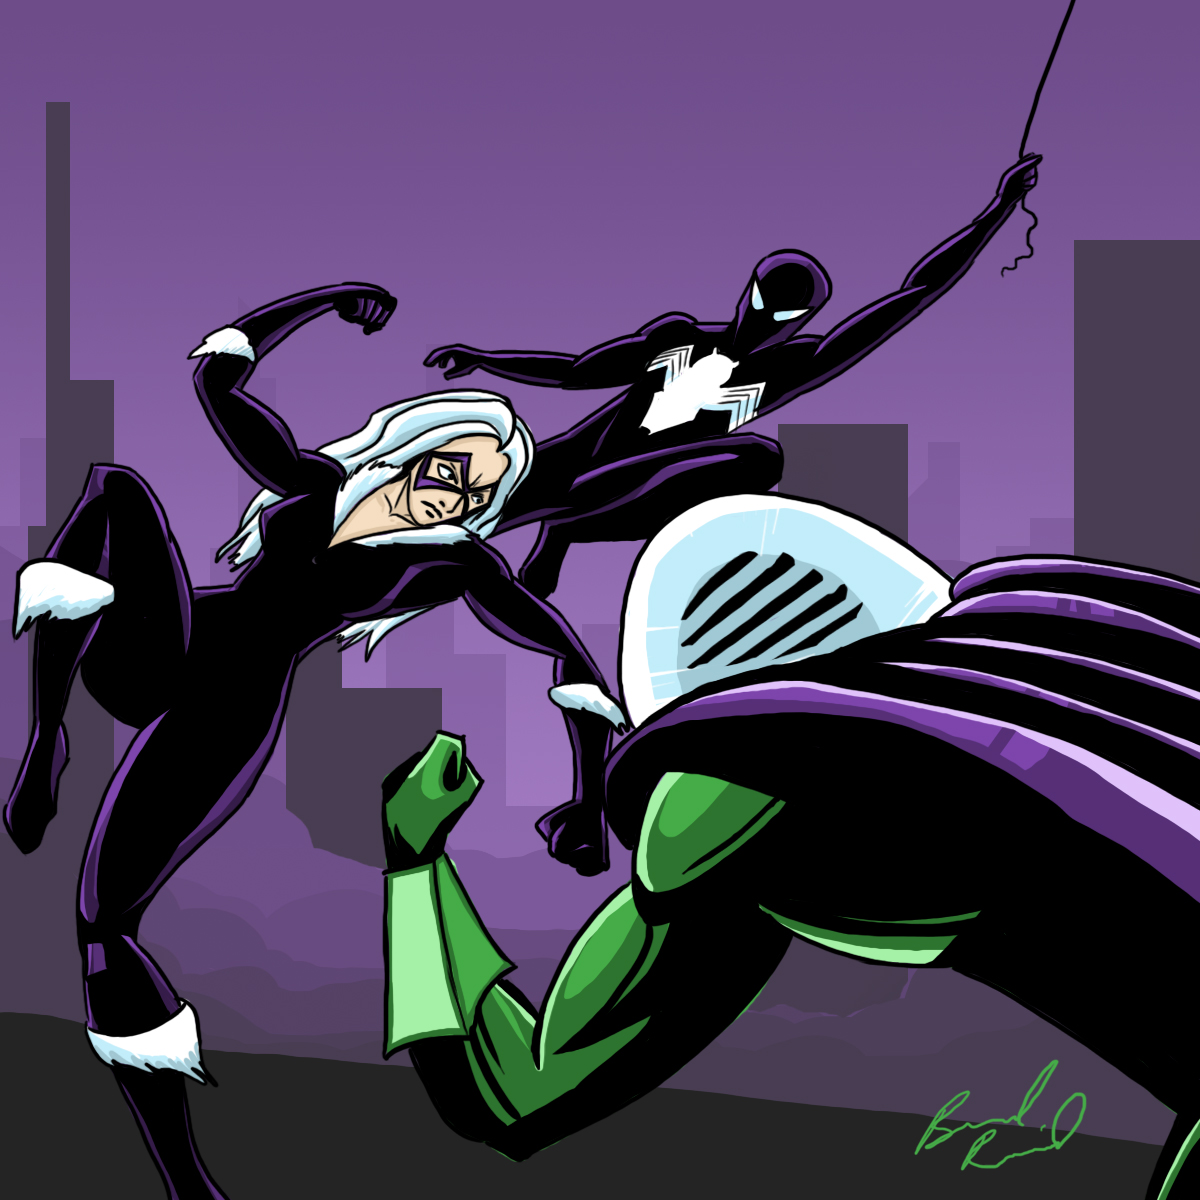 Spider-Man x Black-Cat vs. Mysterio